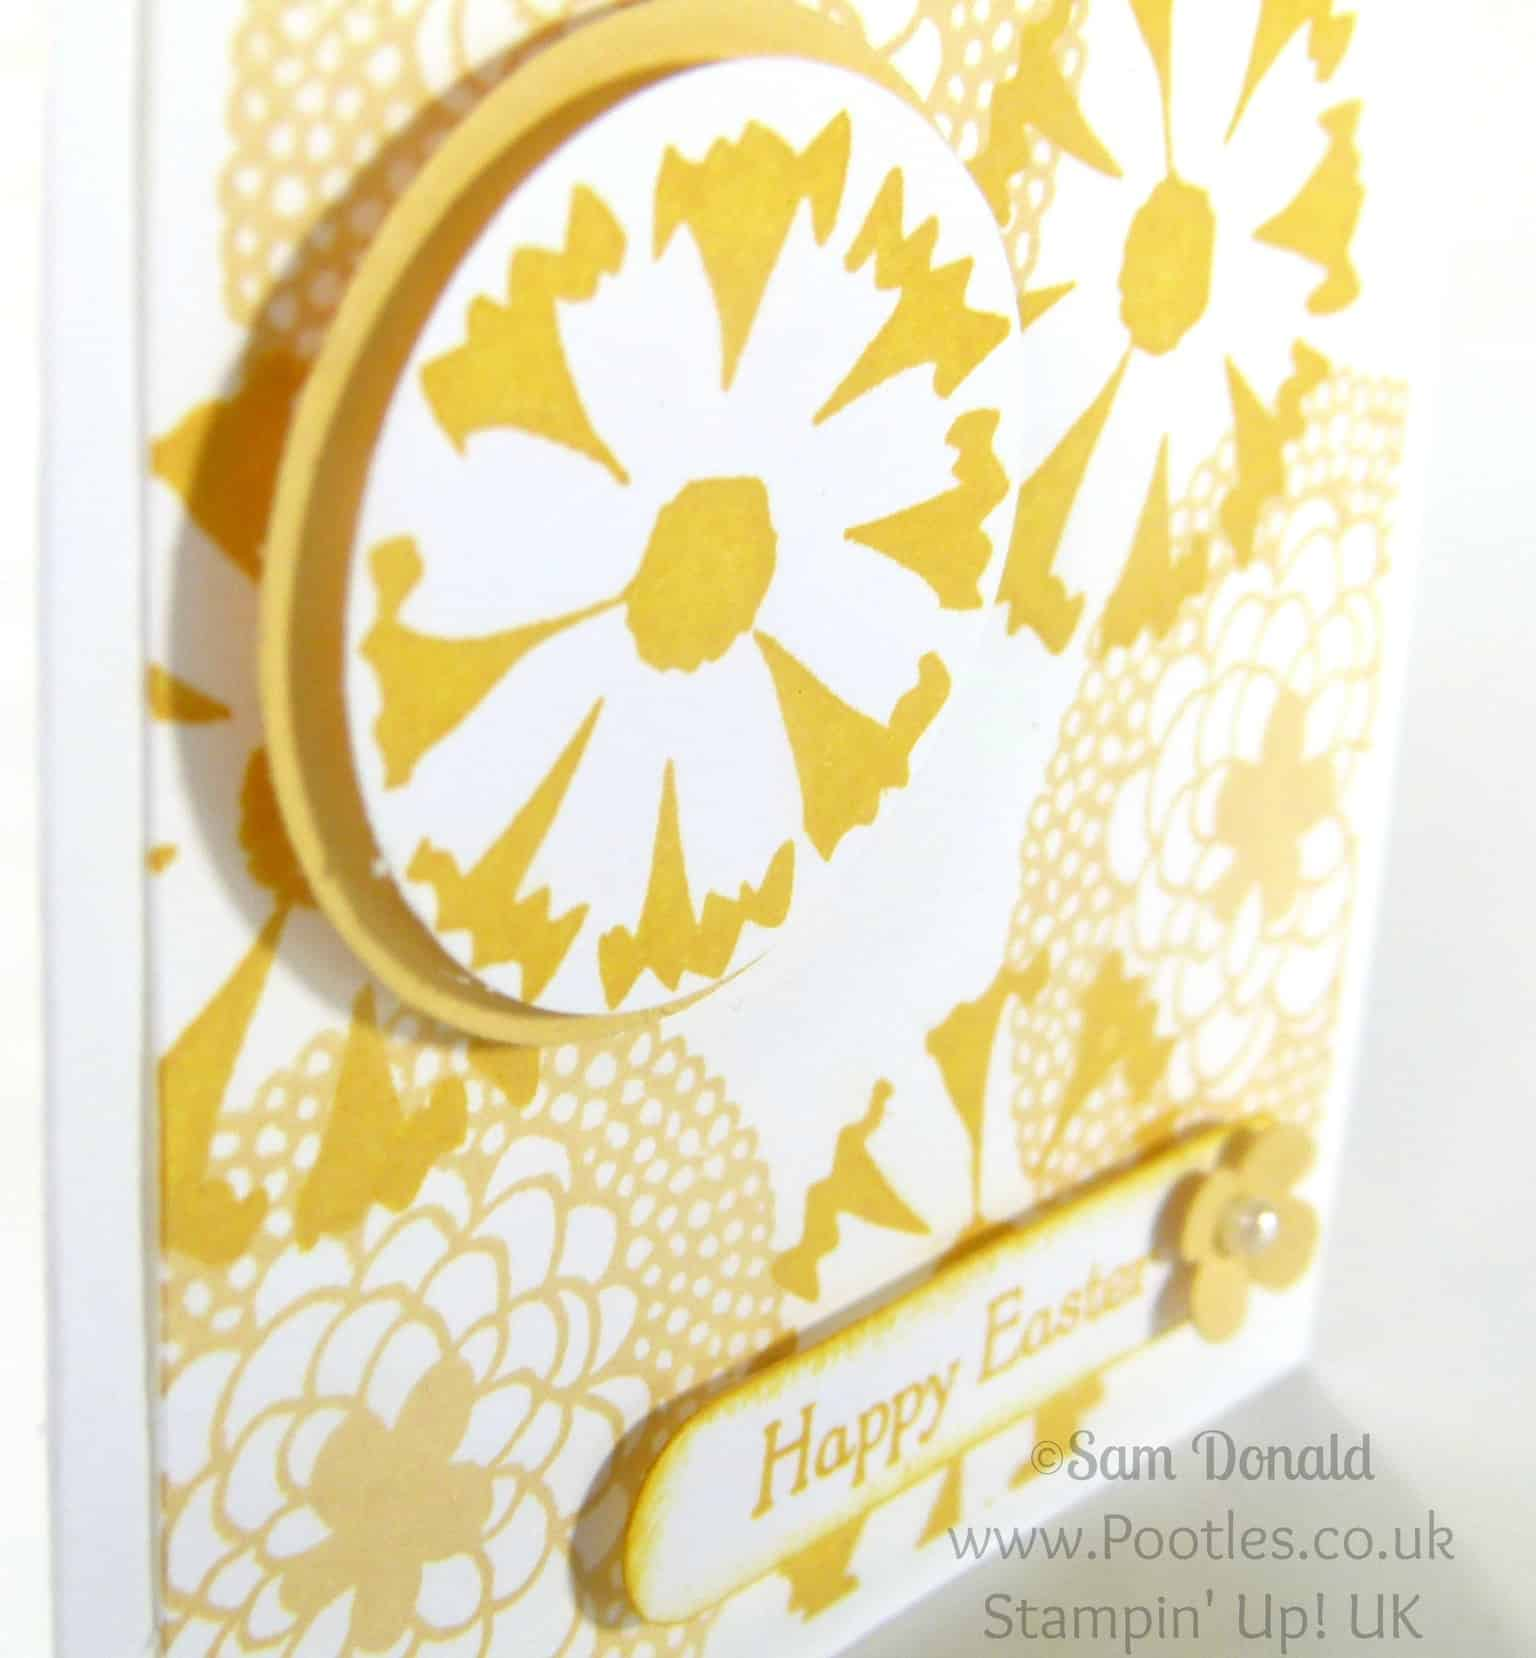 Petal Parade 3×3 Easter Card Showcase using ©Stampin' Up! UK products